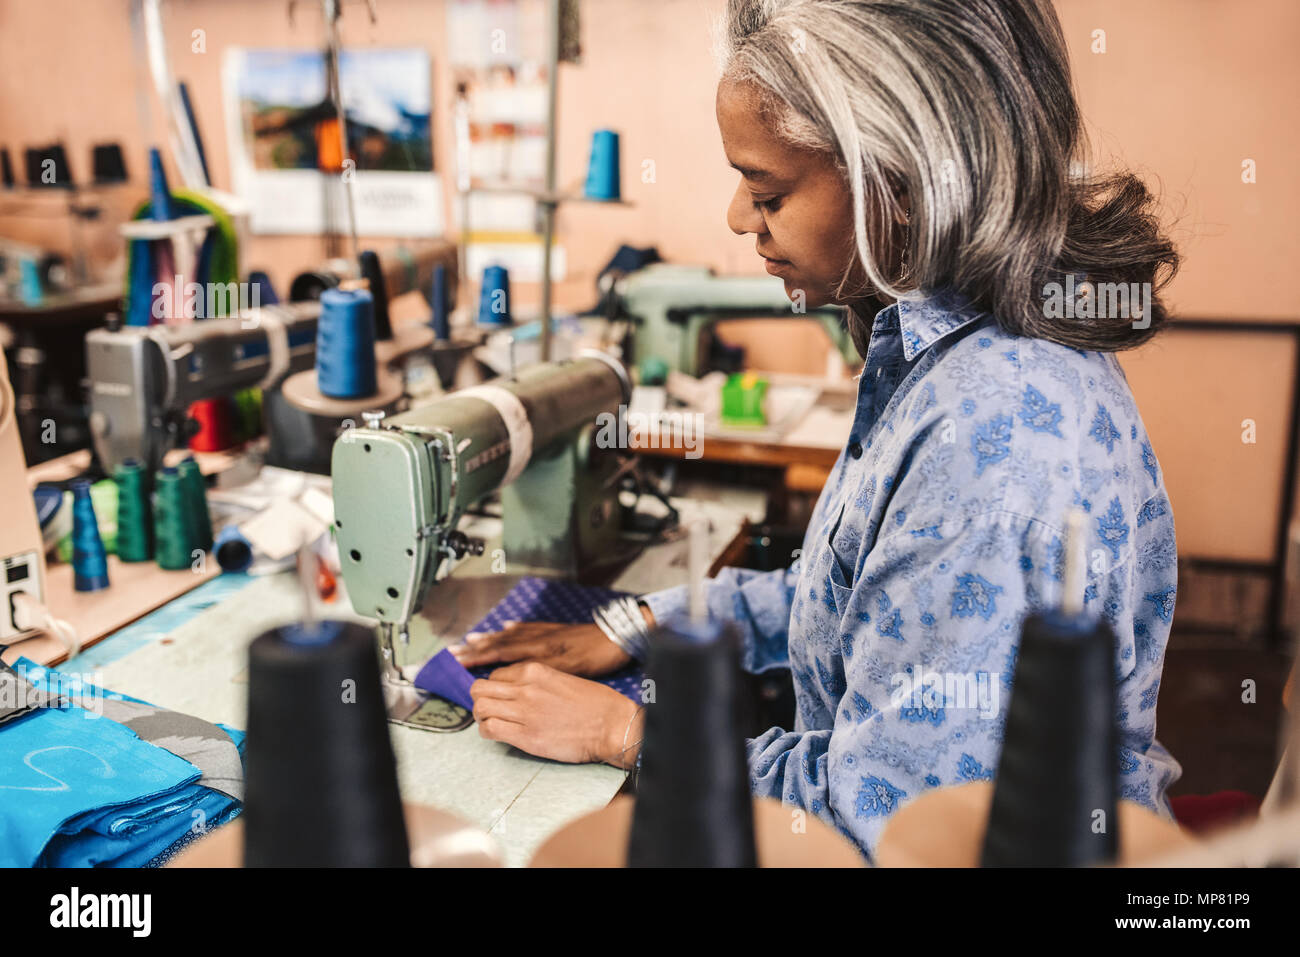 Mature woman sewing cloth in her clothes workshop - Stock Image